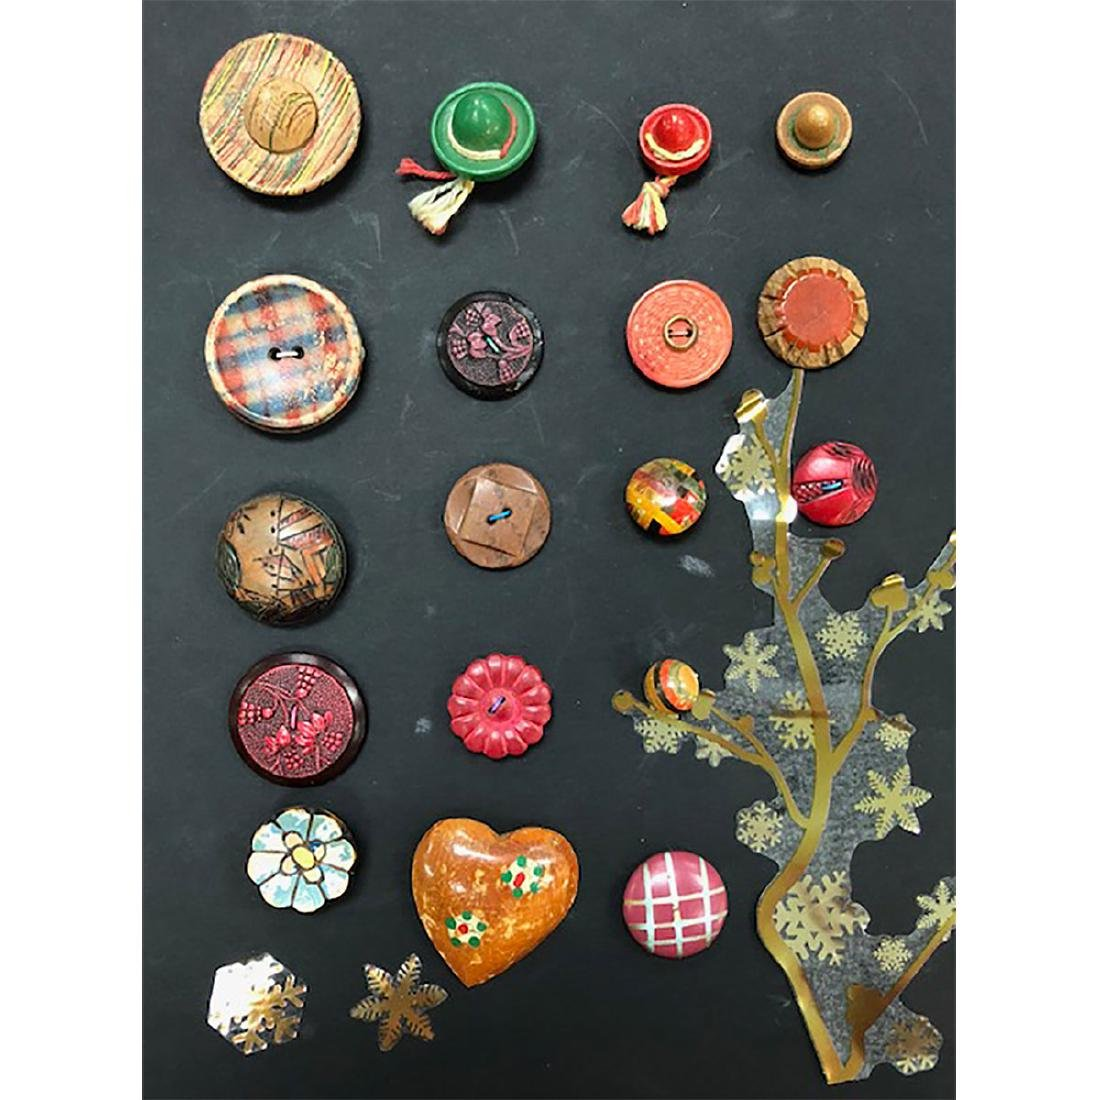 6 CARDS OF HORN/VI/WOOD BUTTONS S/M/L